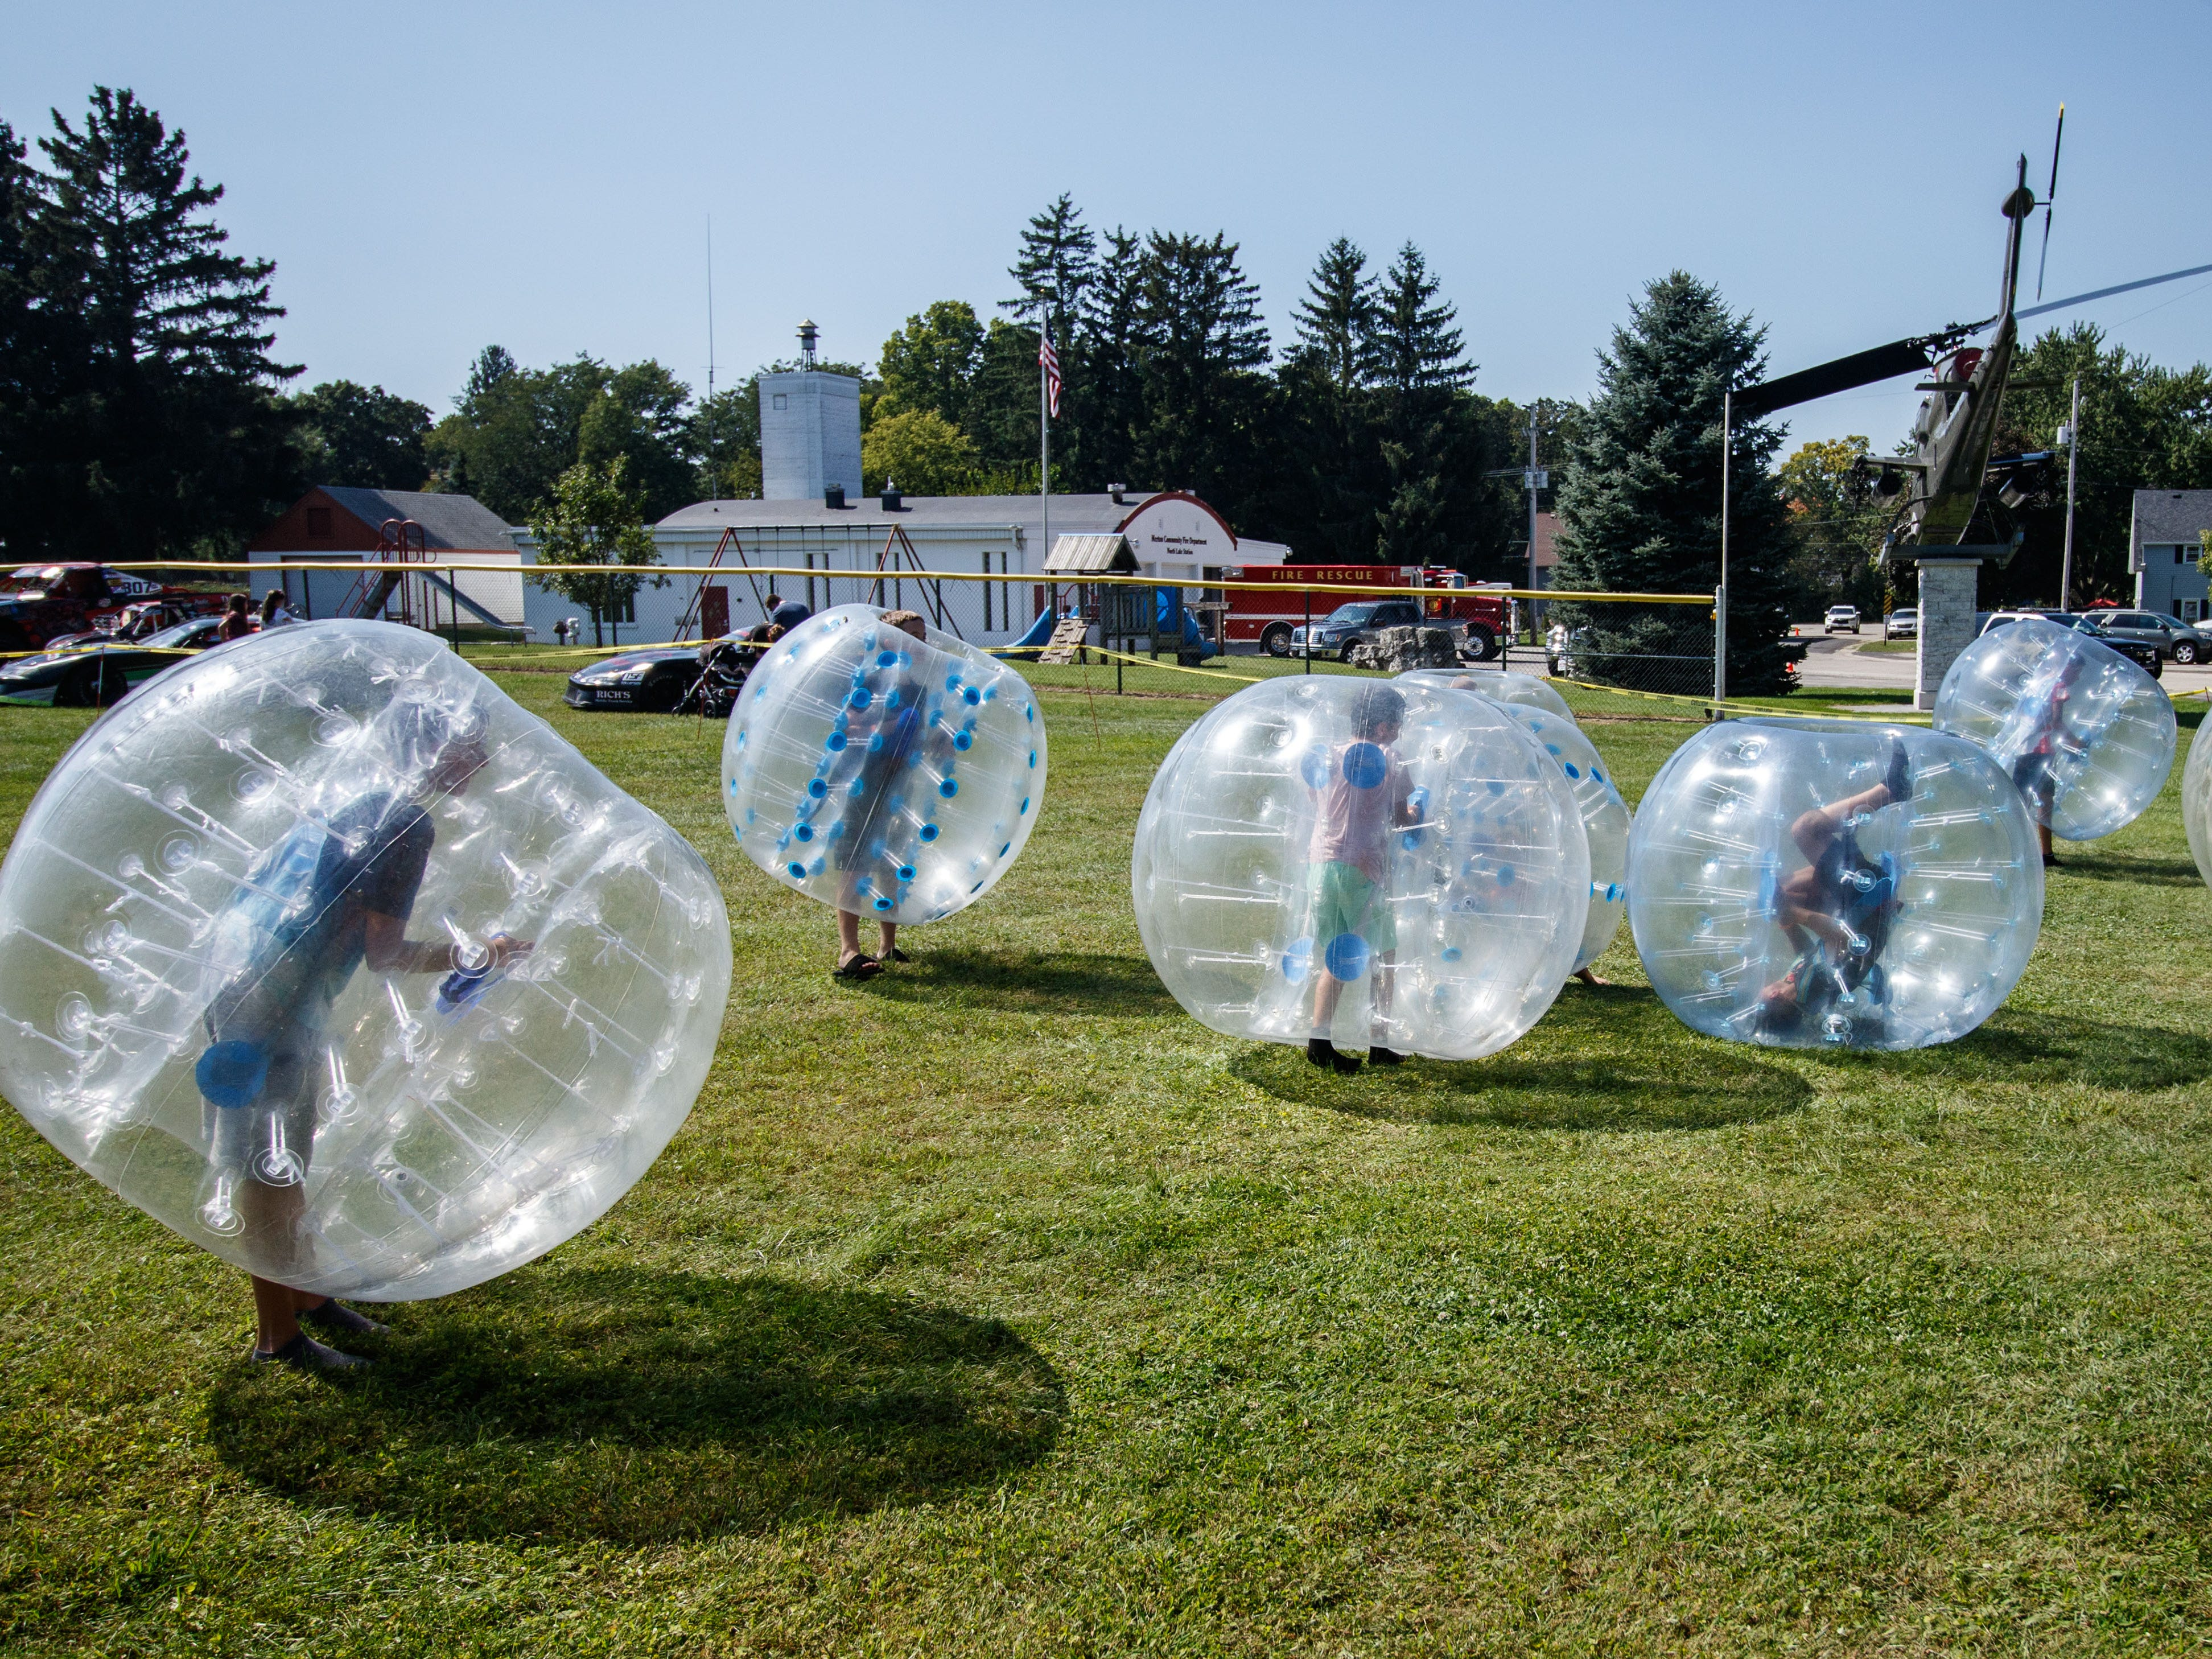 Youngsters play in giant inflatable soccer balls during the annual North Lake Harvest Fest on Saturday, Sept. 15, 2018. The free event includes a parade, vendor market, food trucks, live music, tractor pulls, face painting, kids activities and more.